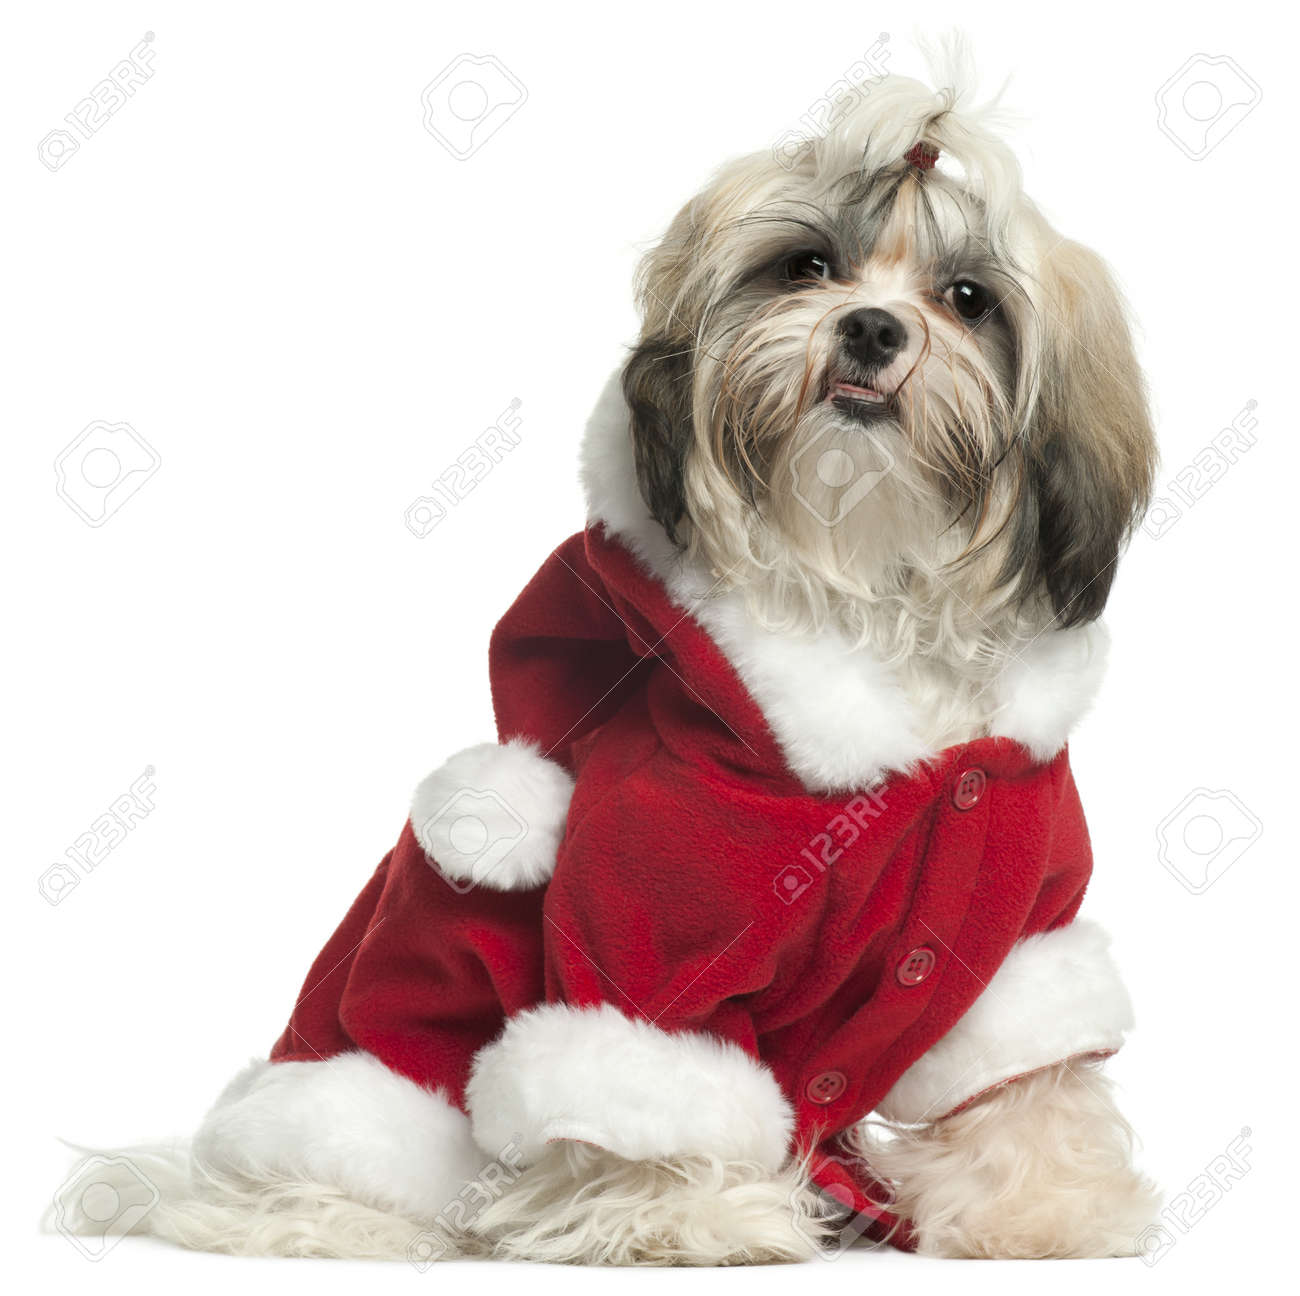 Shih Tzu puppy wearing Santa outfit, 9 months old, sitting in front of white background Stock Photo - 8650626